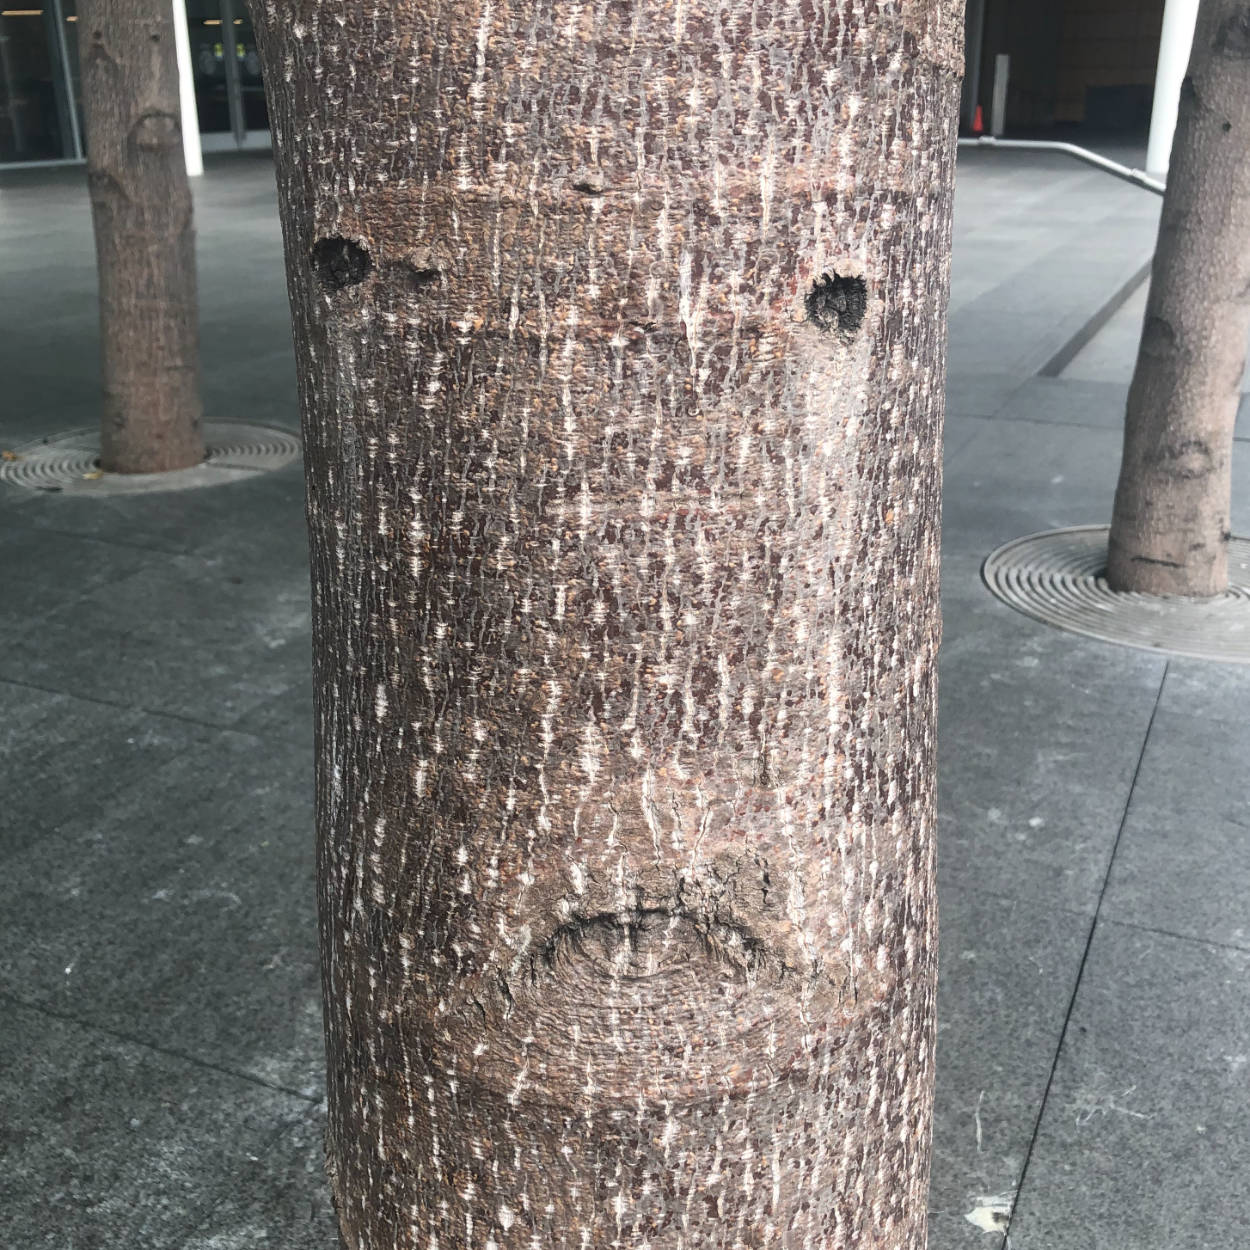 A face in the trunk of a smooth-barked tree in the middle of a paved square